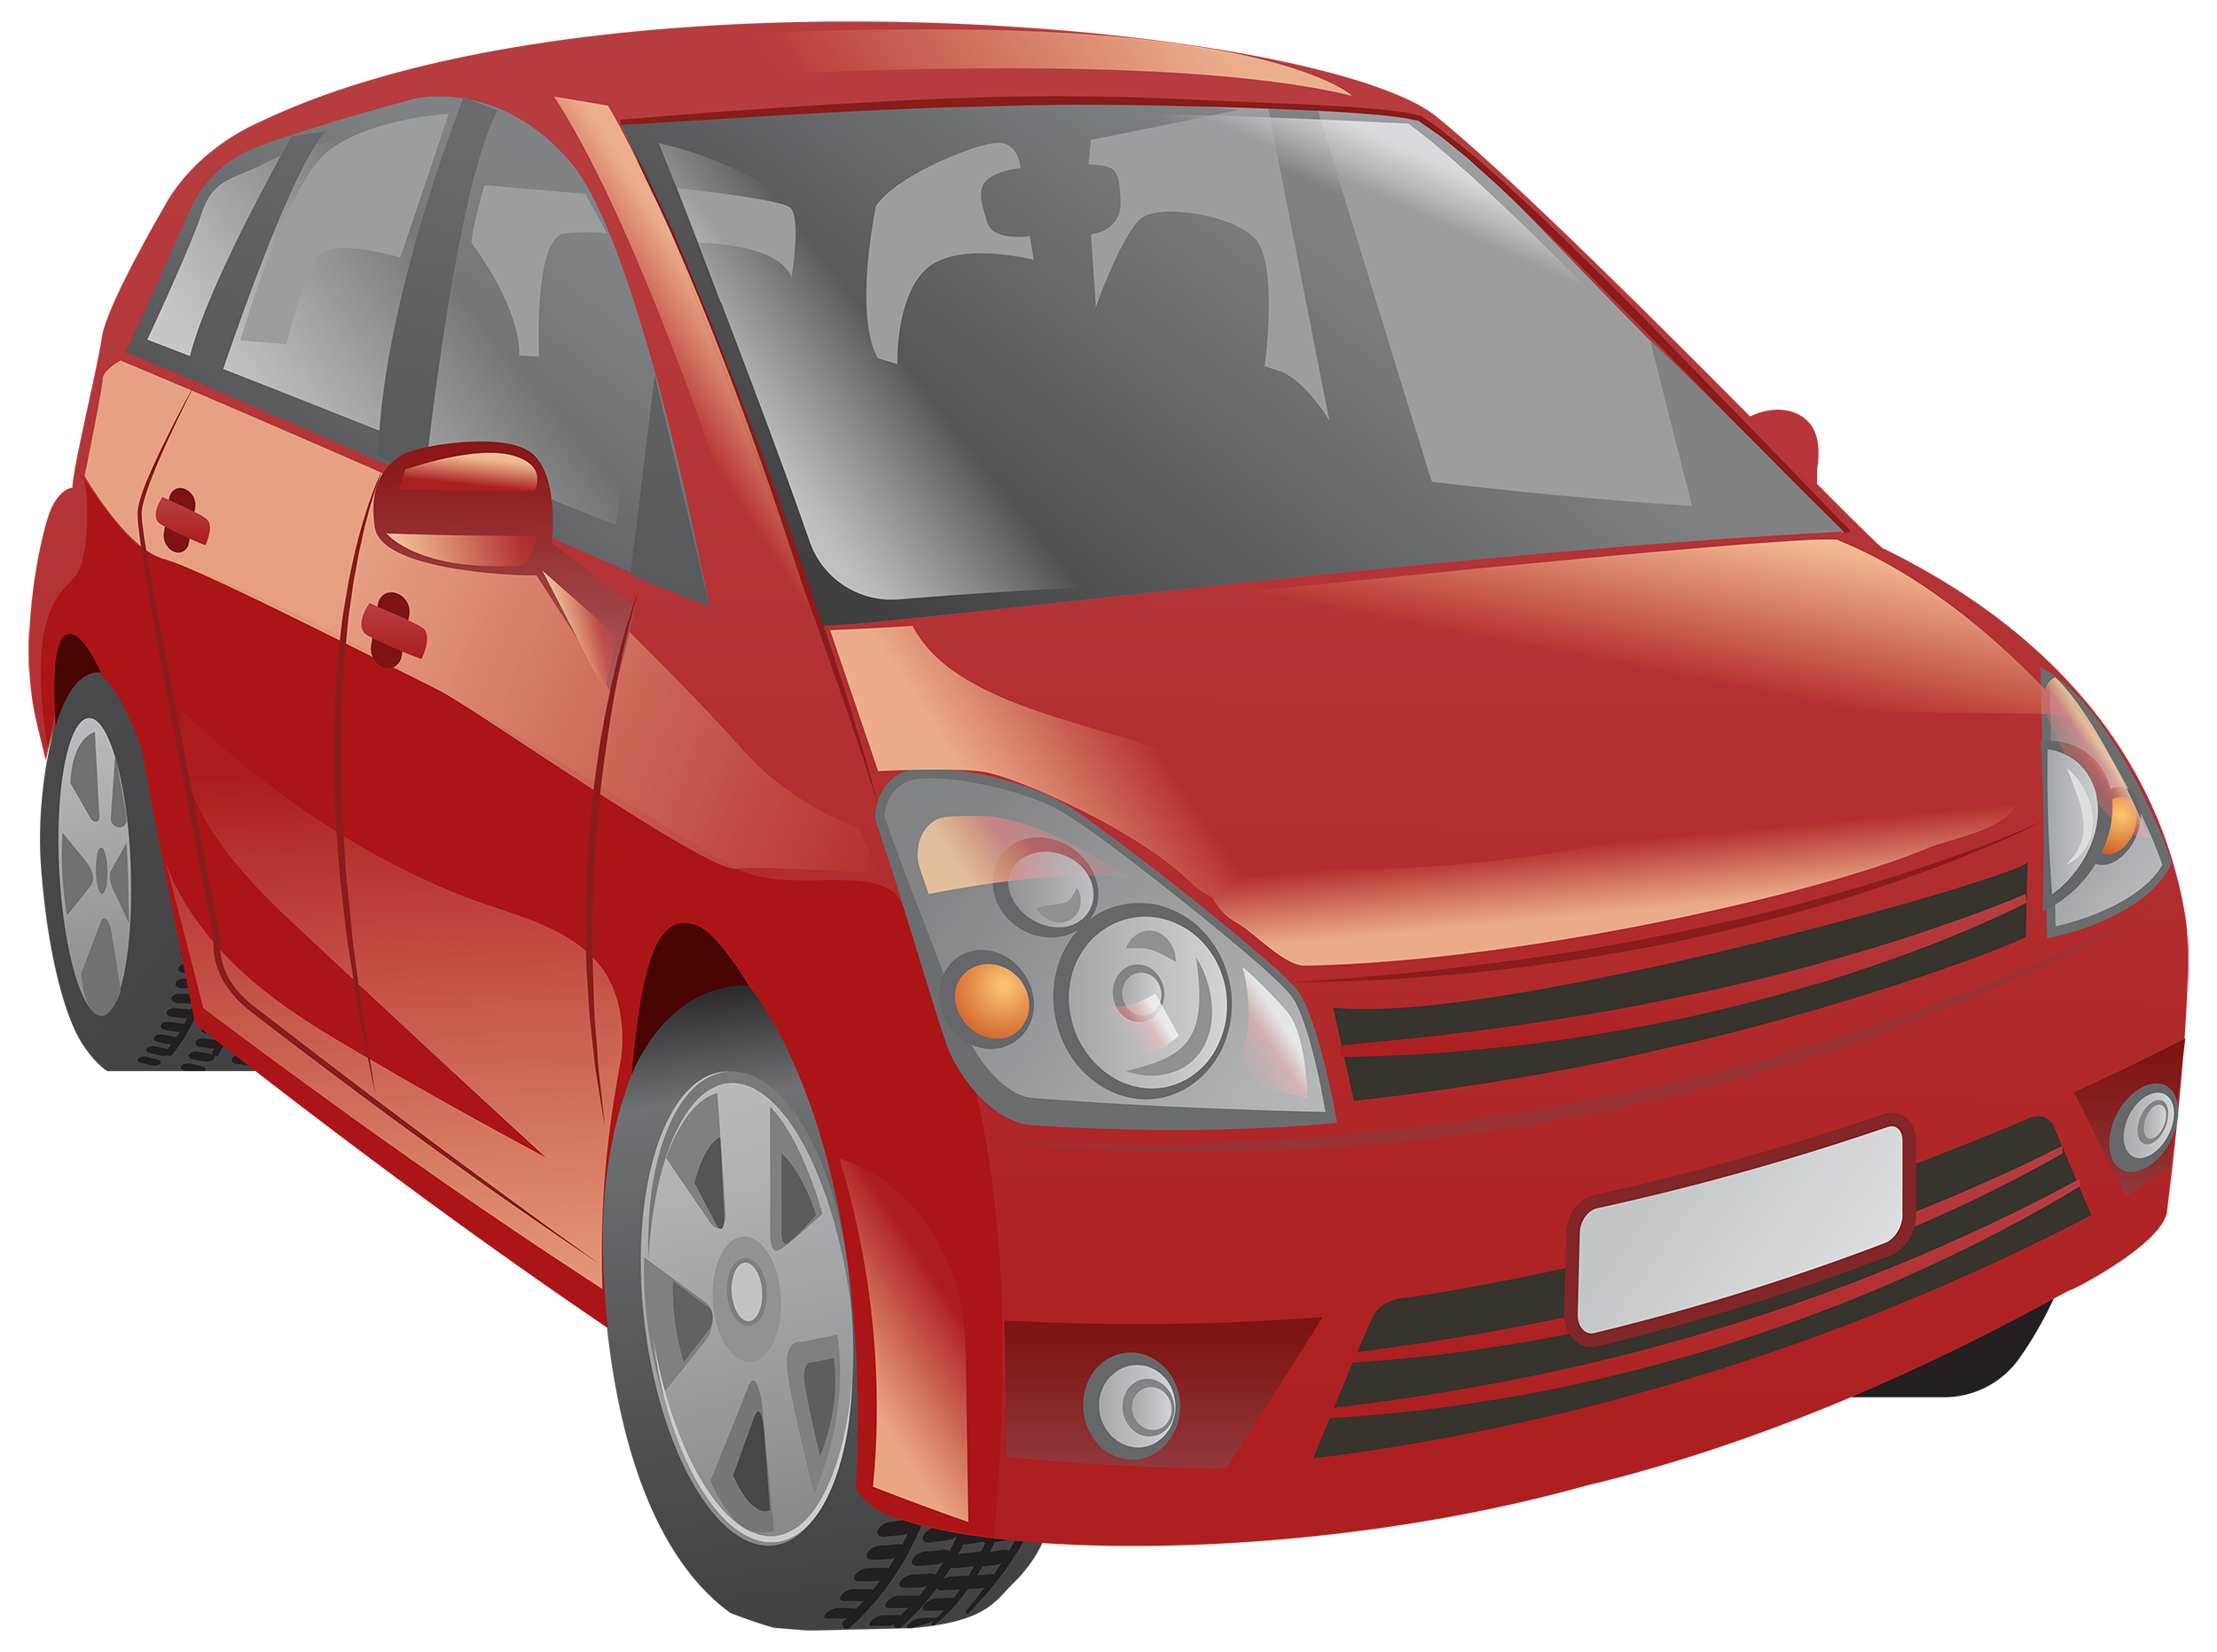 Clipart car. Red png best web